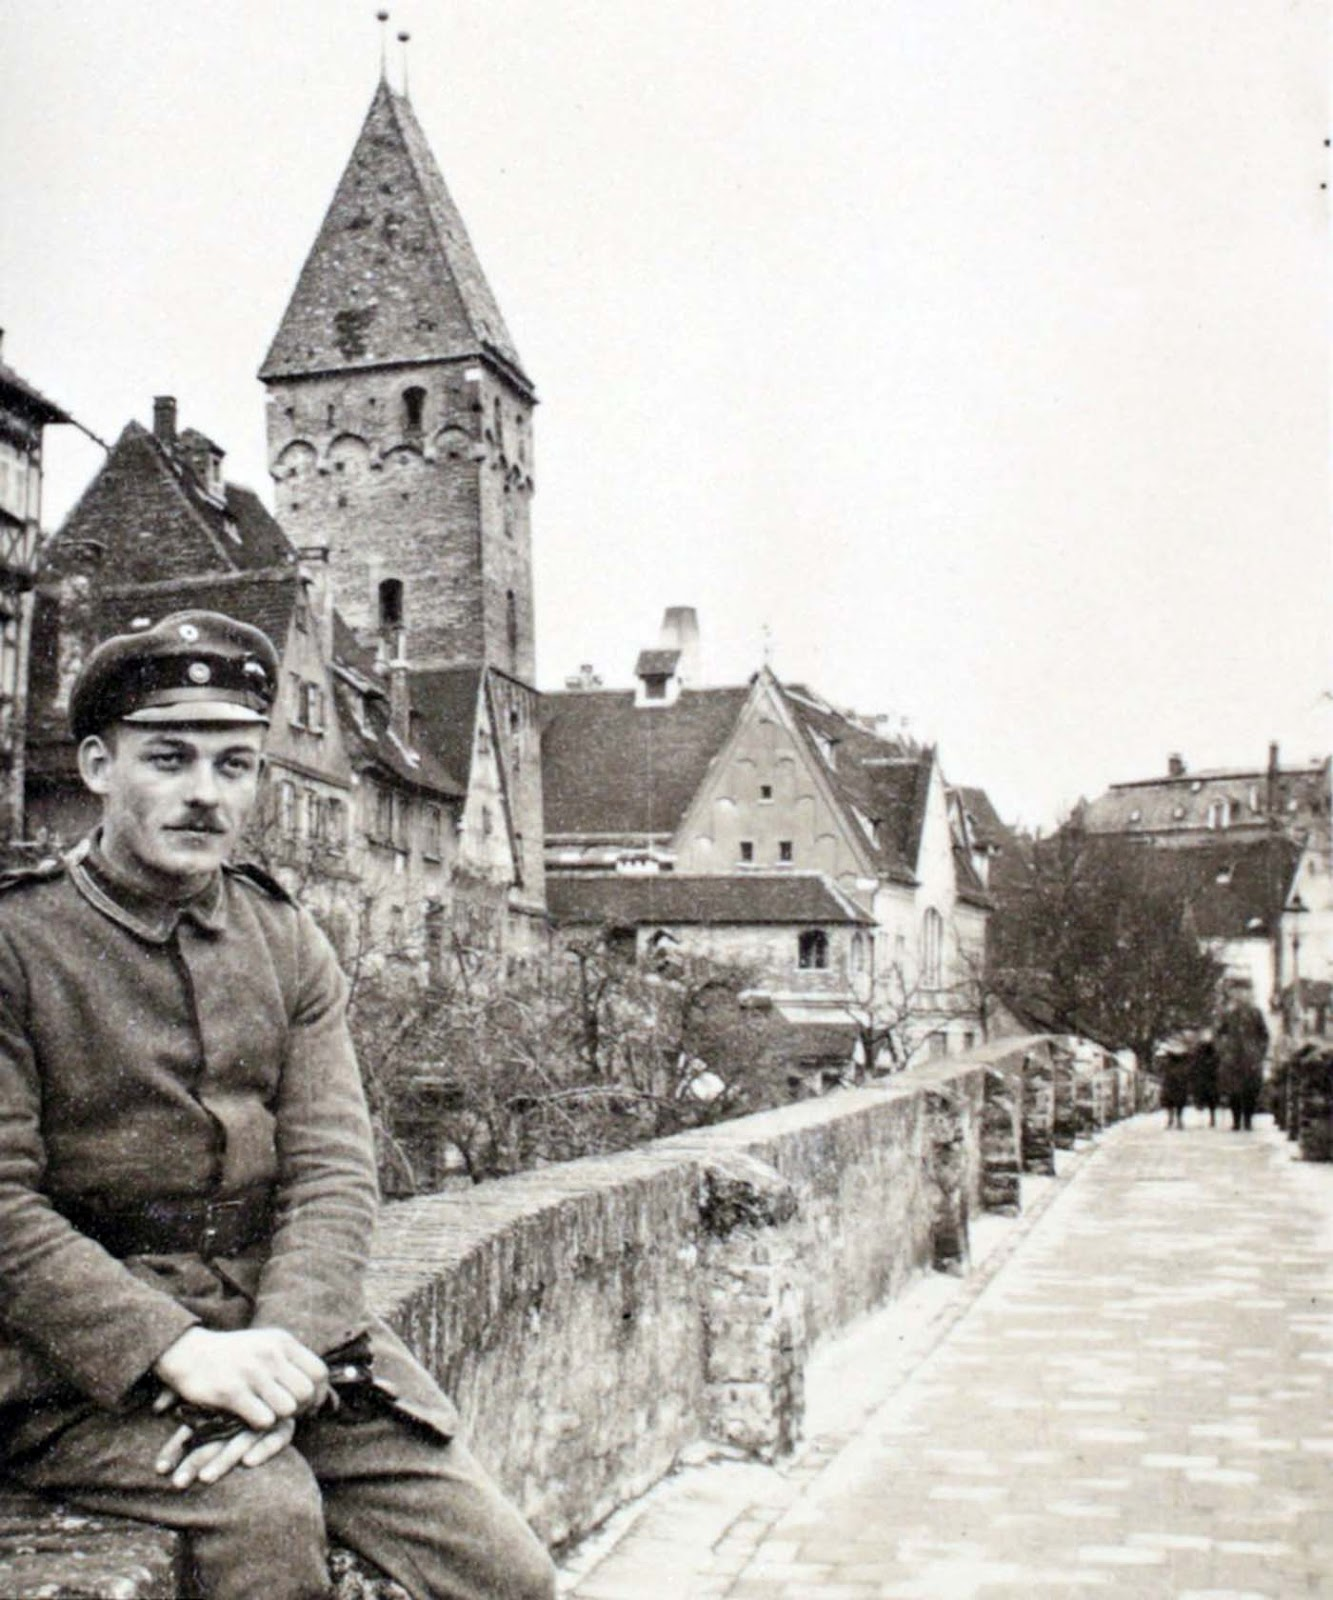 A 16 year old Walter Kleinfeldt photographed in the German city of Ulm in 1915. Just a few weeks later, he was on the Somme.